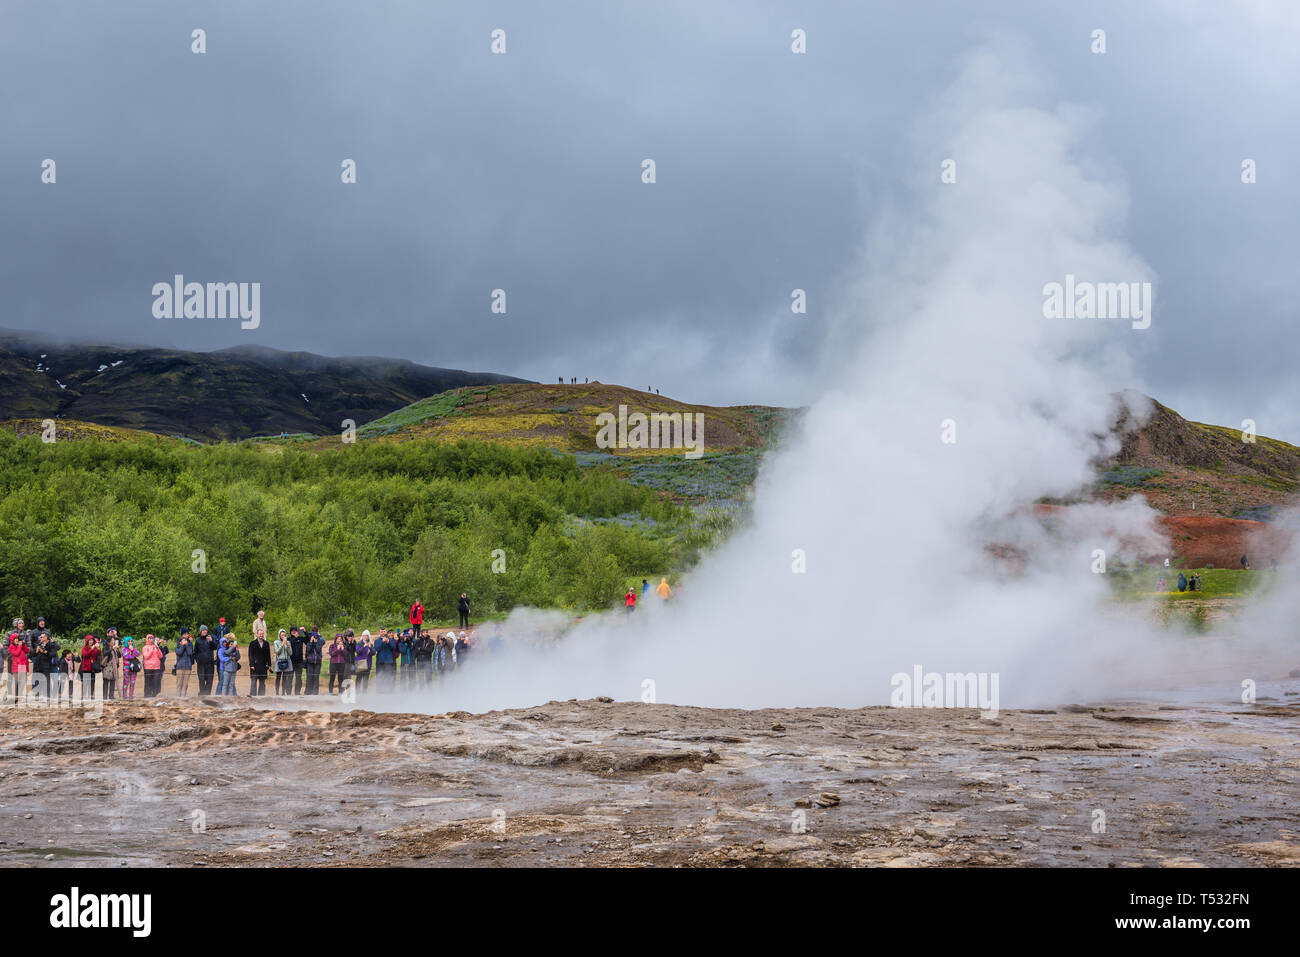 Strokkur geyser eruption in geothermal area beside the Hvta River in Haukadalur valley, Iceland Stock Photo